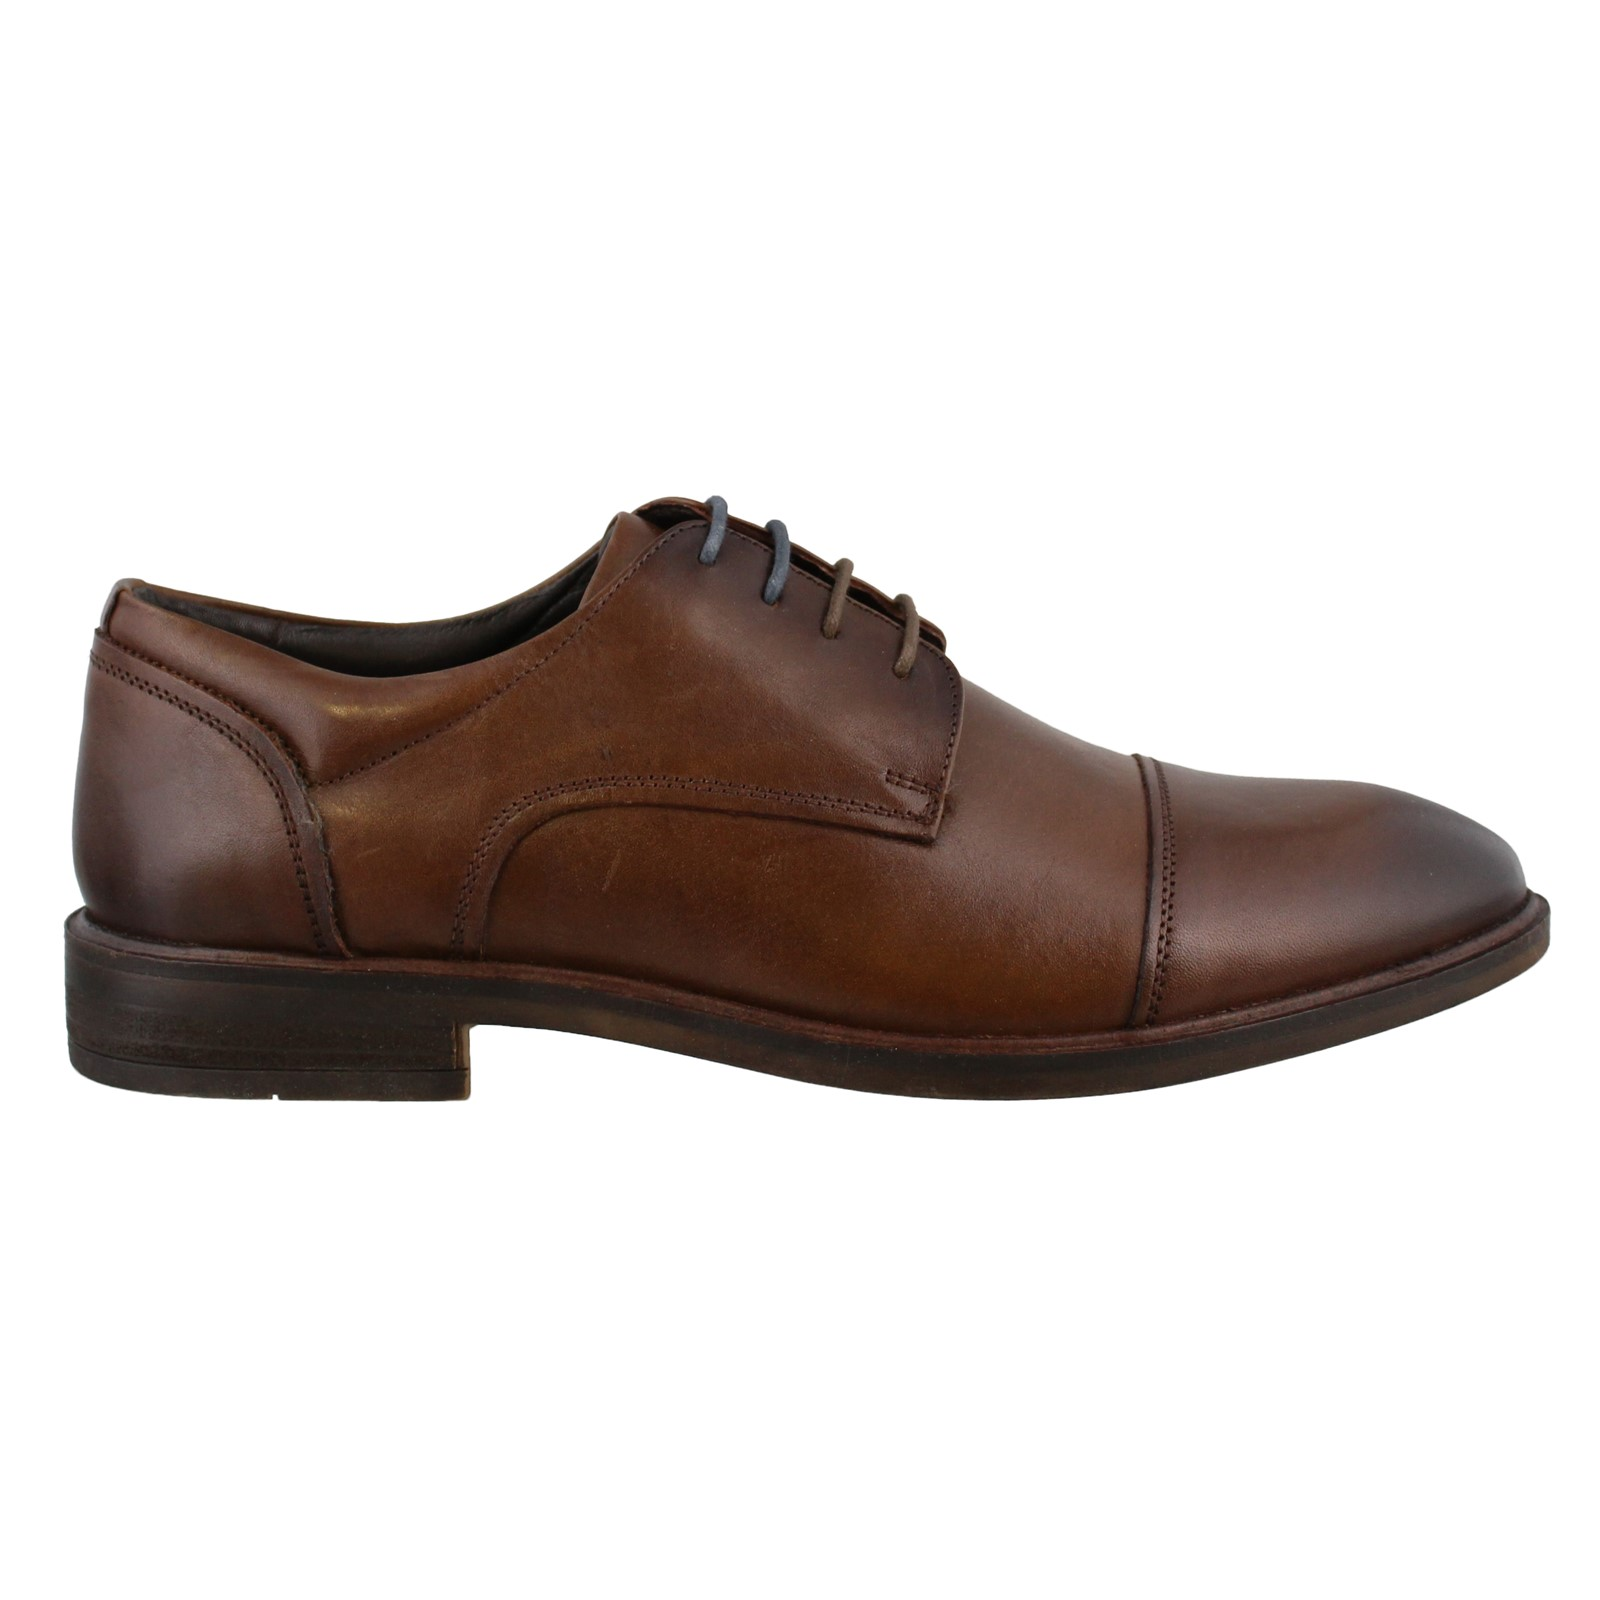 Men's Josef Seibel, Myles 19 Lace up Shoes